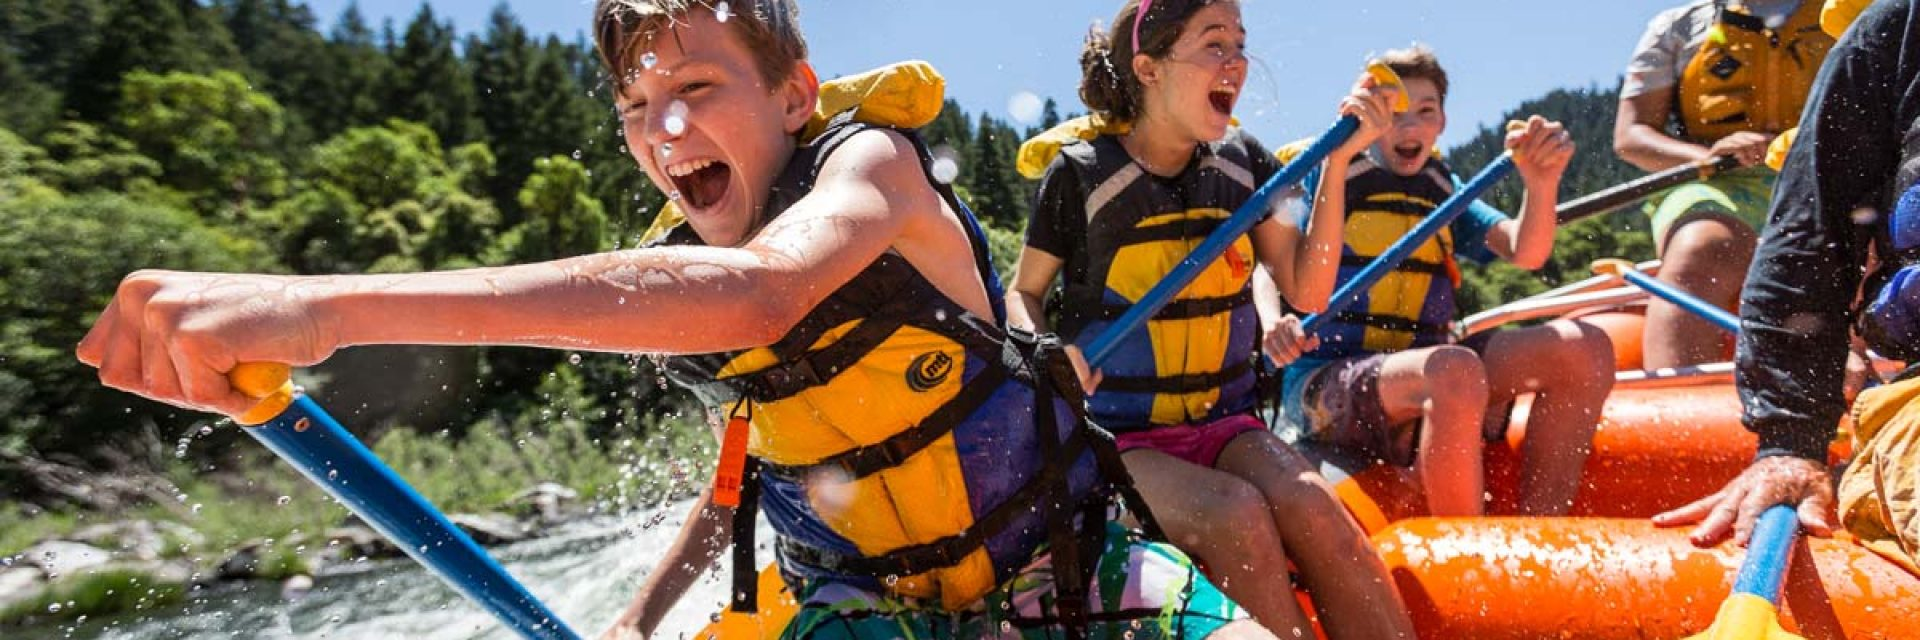 Escape the Ordinary.  Your Whitewater Awaits.